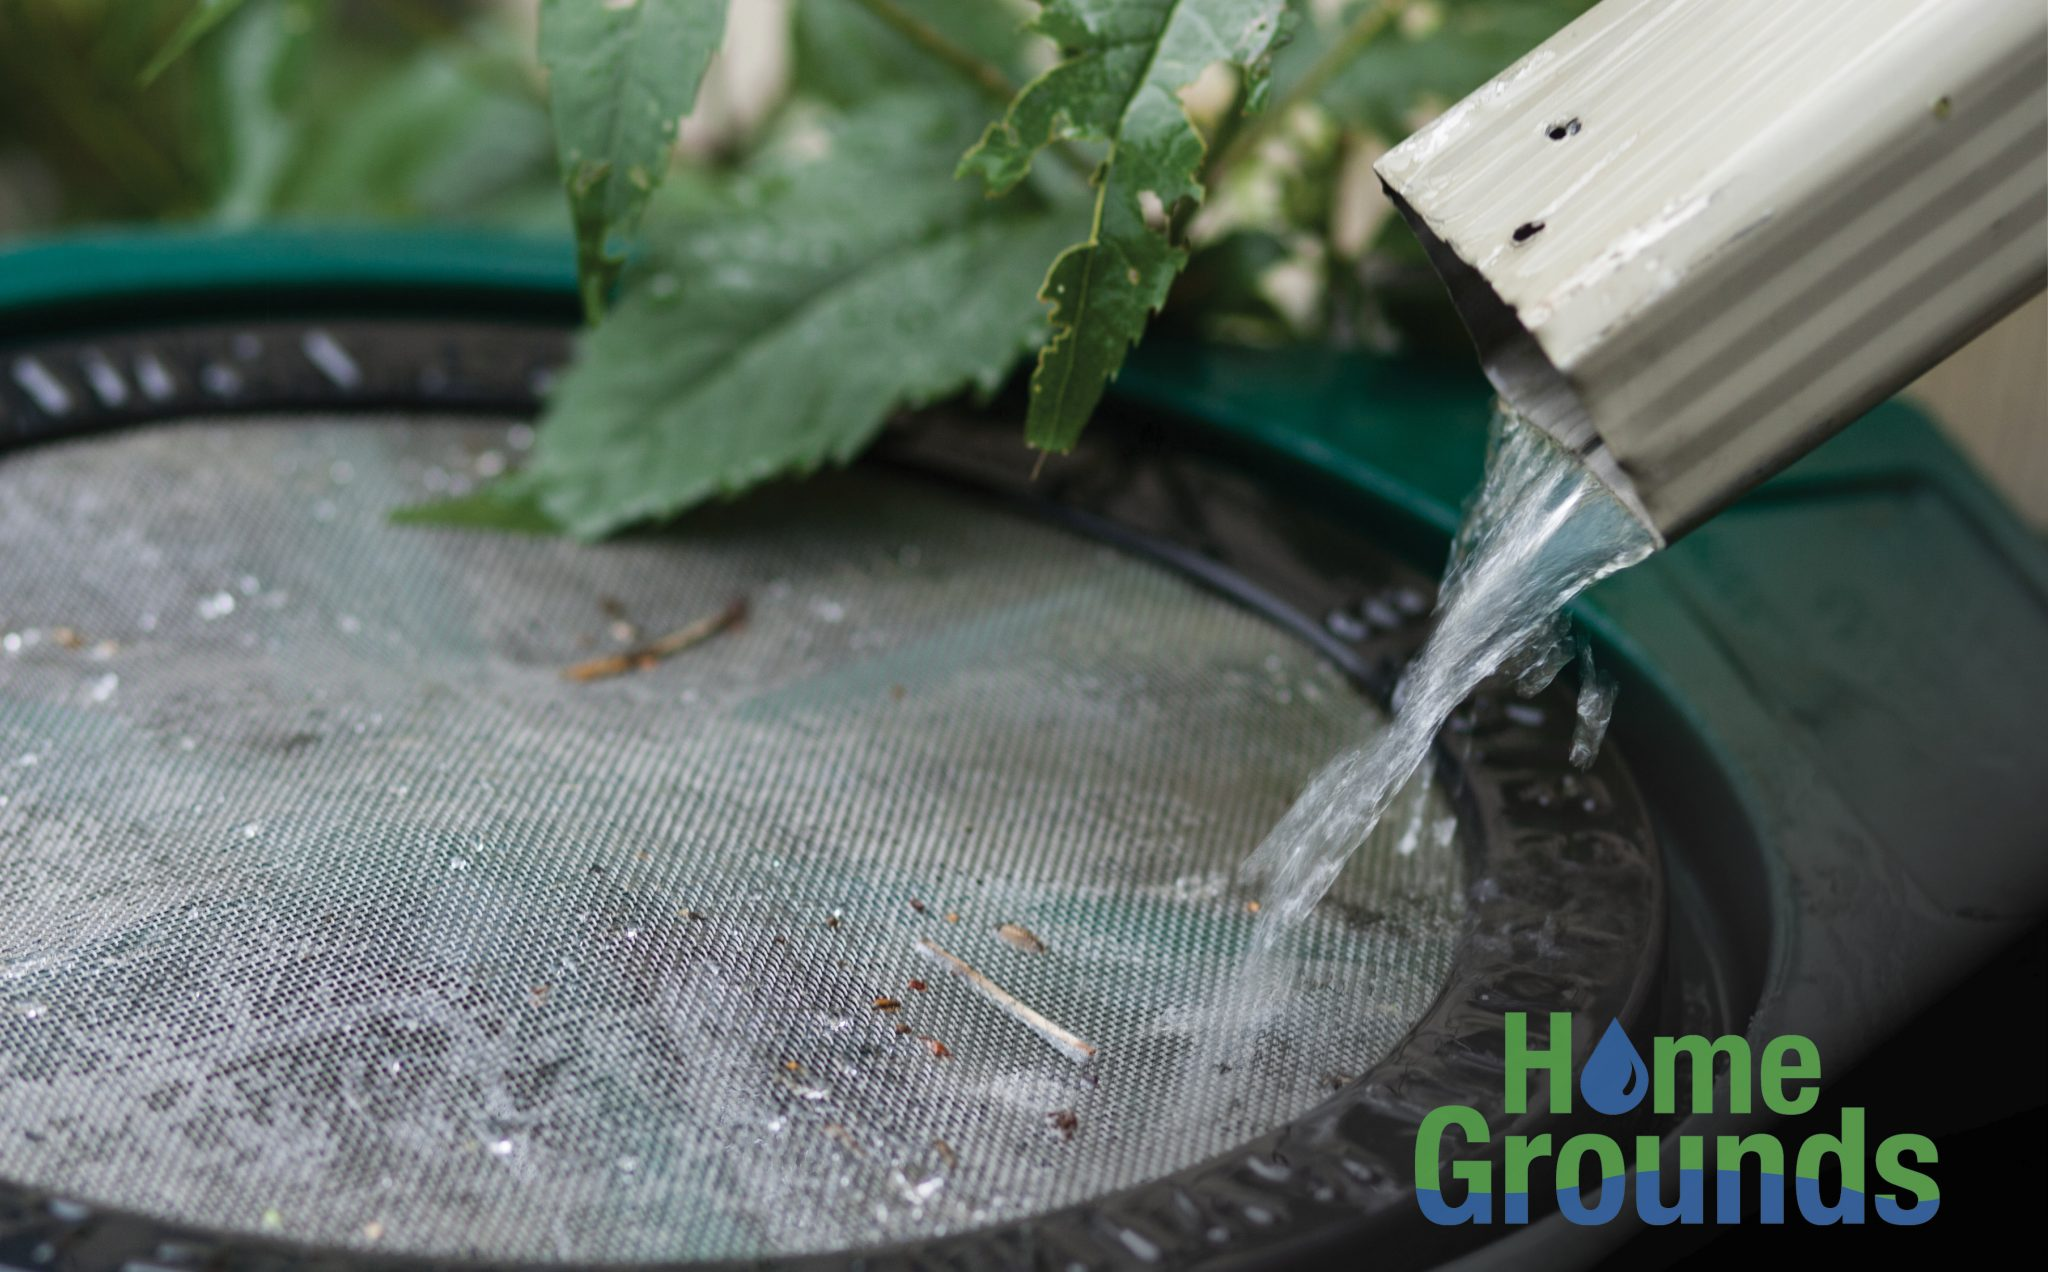 Close-up of water flowing into a rainwater harvesting barrel.